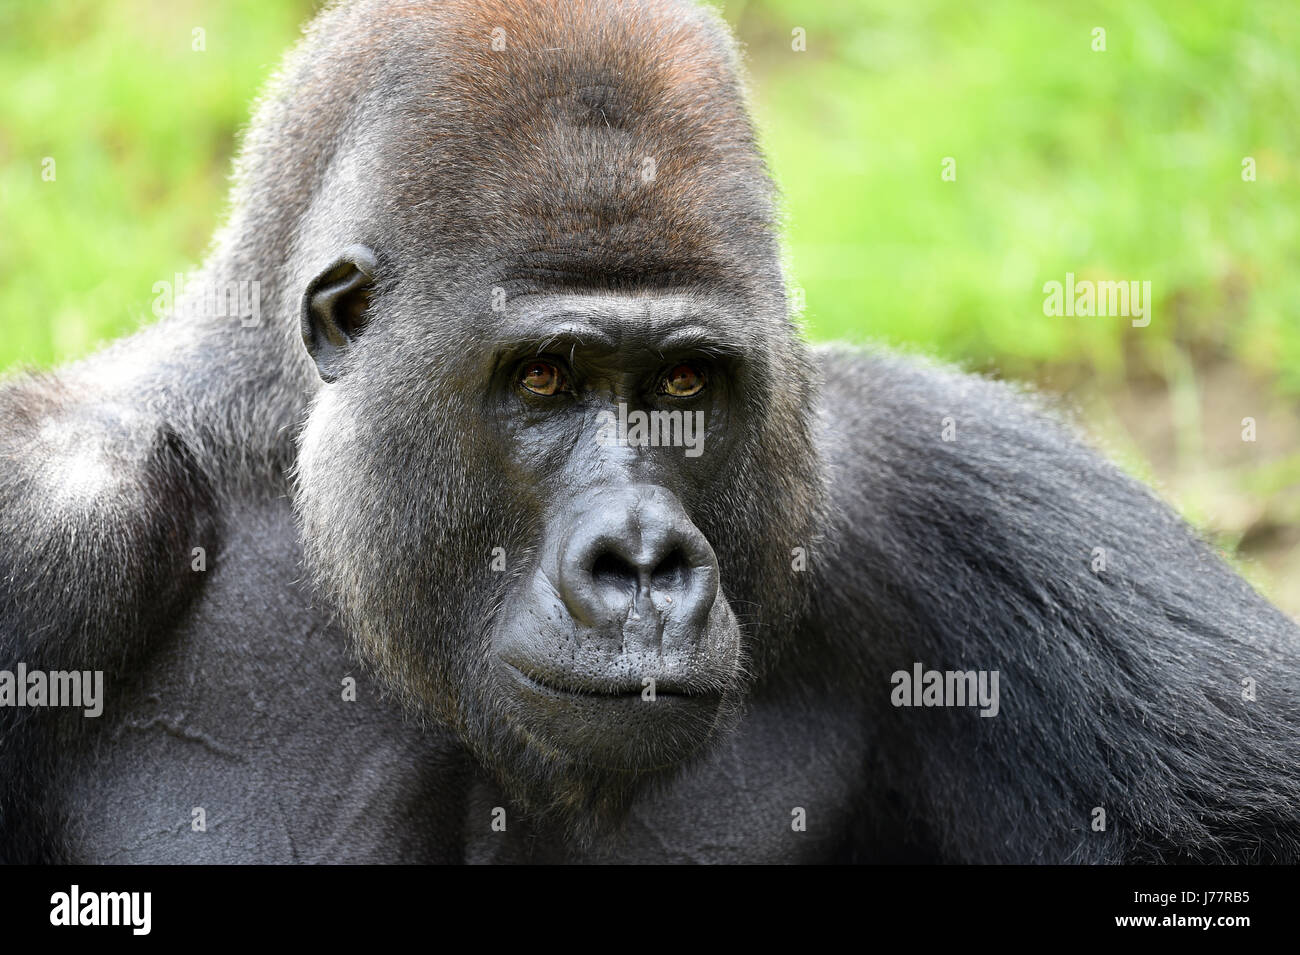 Buzandi, a 25-year-old gorilla, looks at visitors from an open-air enclosure in Hanover Zoo in Hanover, Germany, - Stock Image